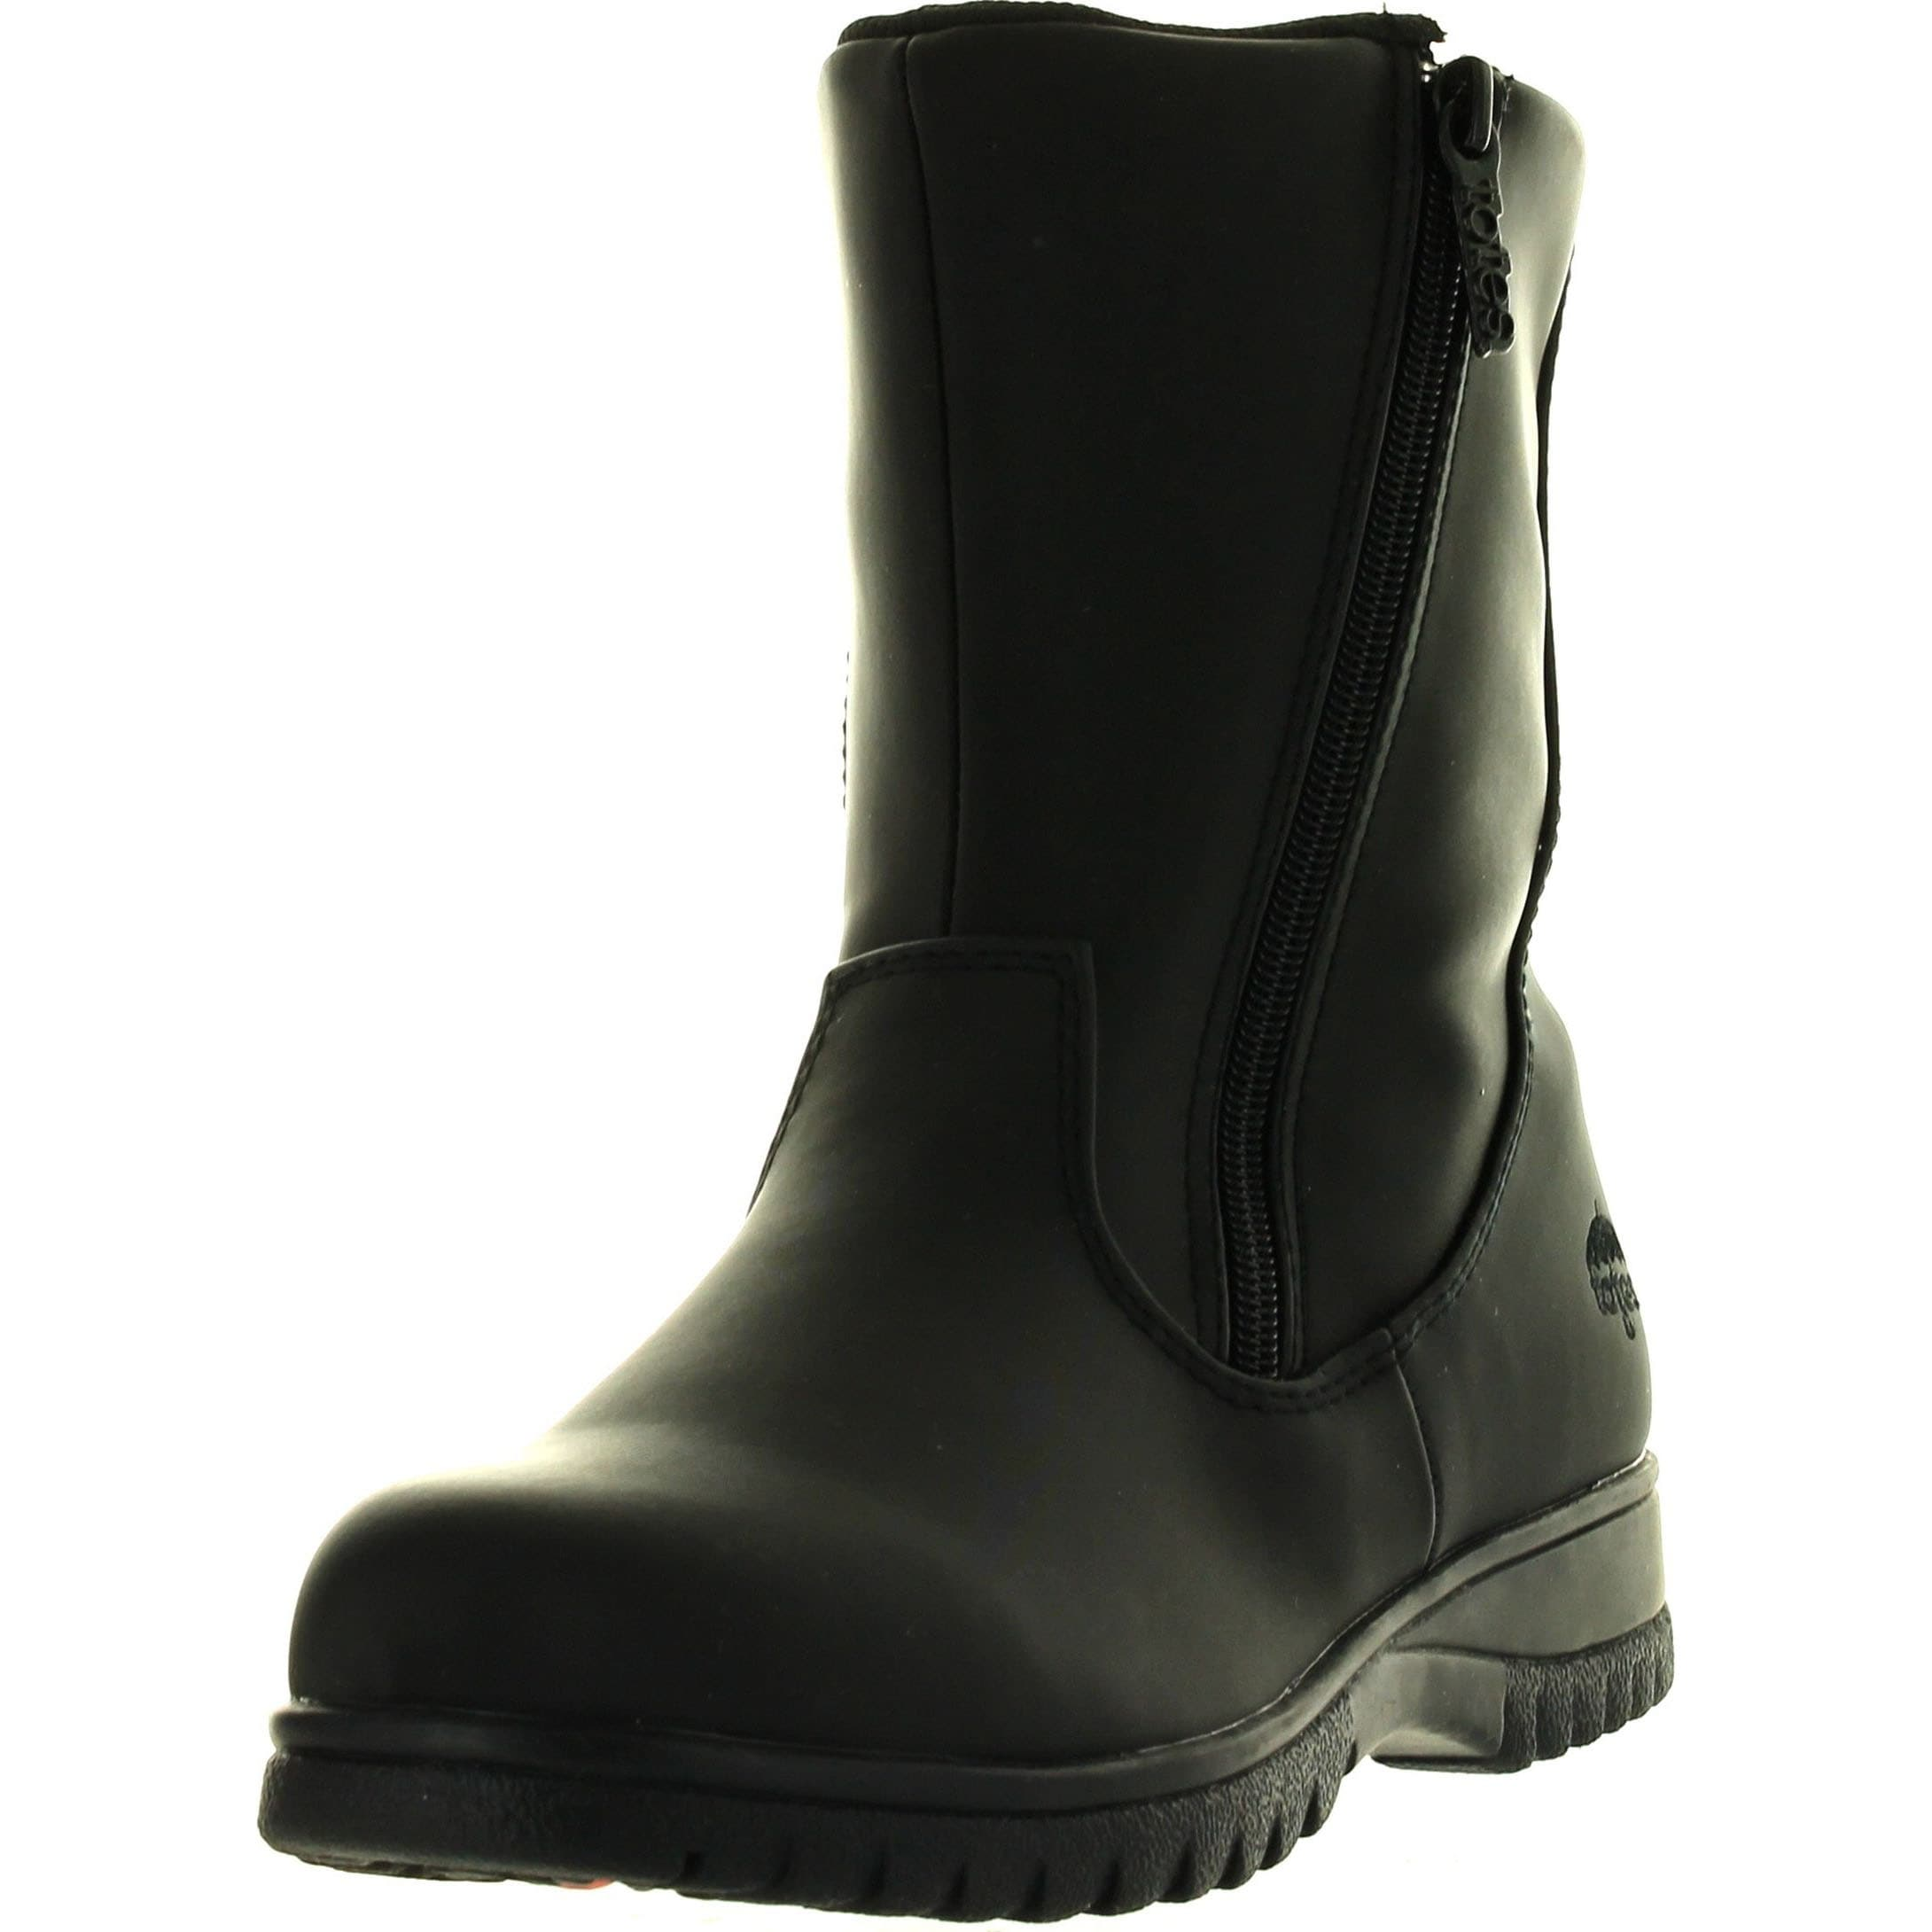 Shop Totes Womens Rosie 2 Winter Waterproof Snow Boots - Black ... becfb7cfc9